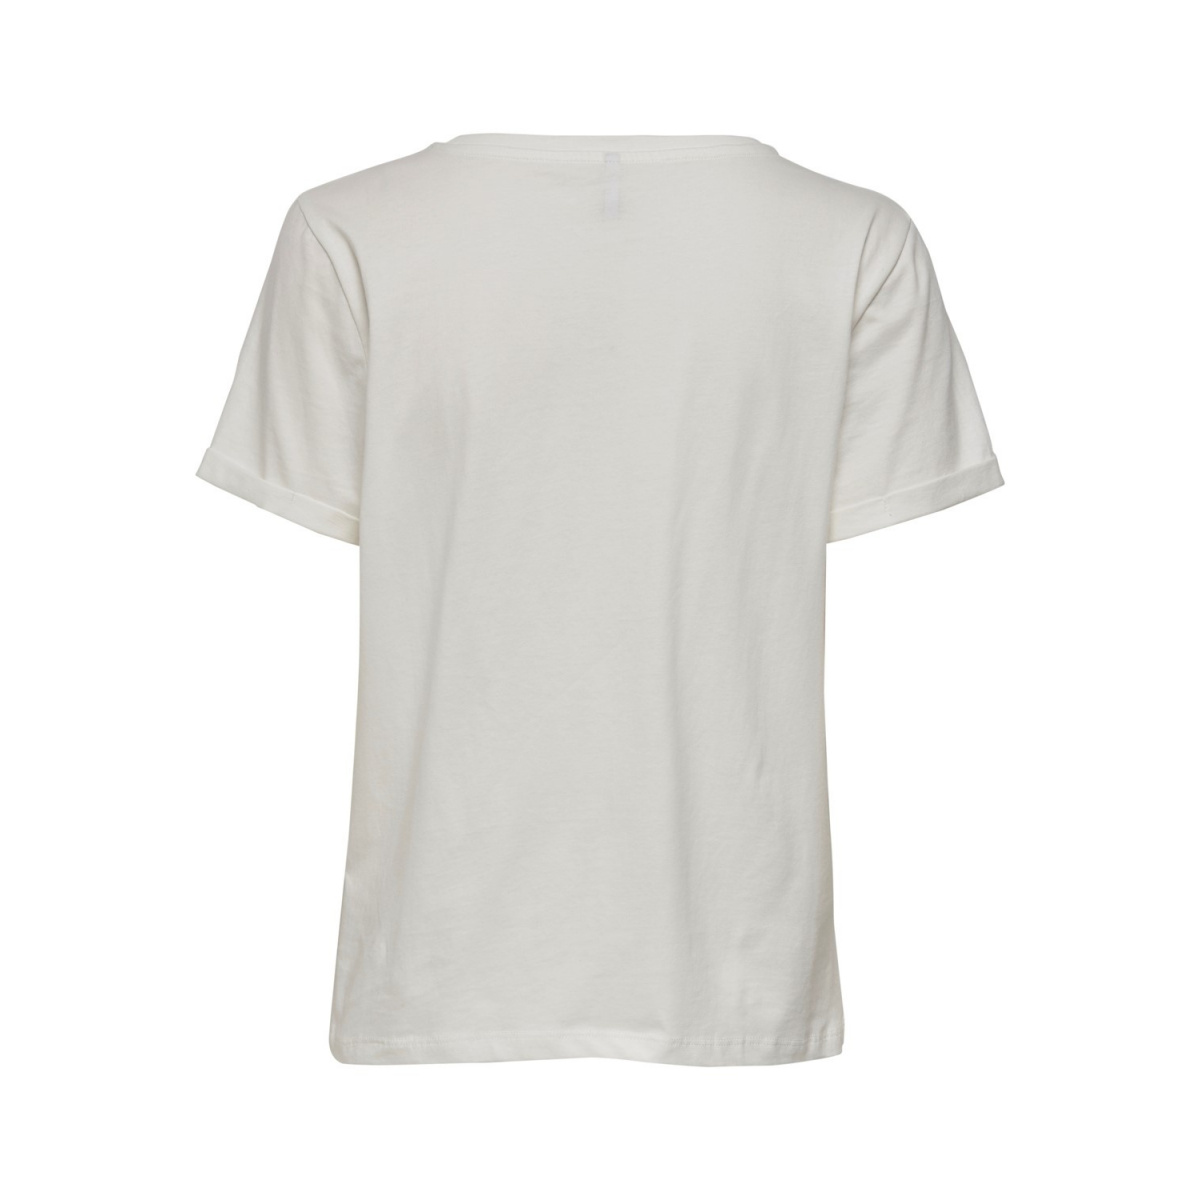 T-shirt manches courtes femme blanc ONLY